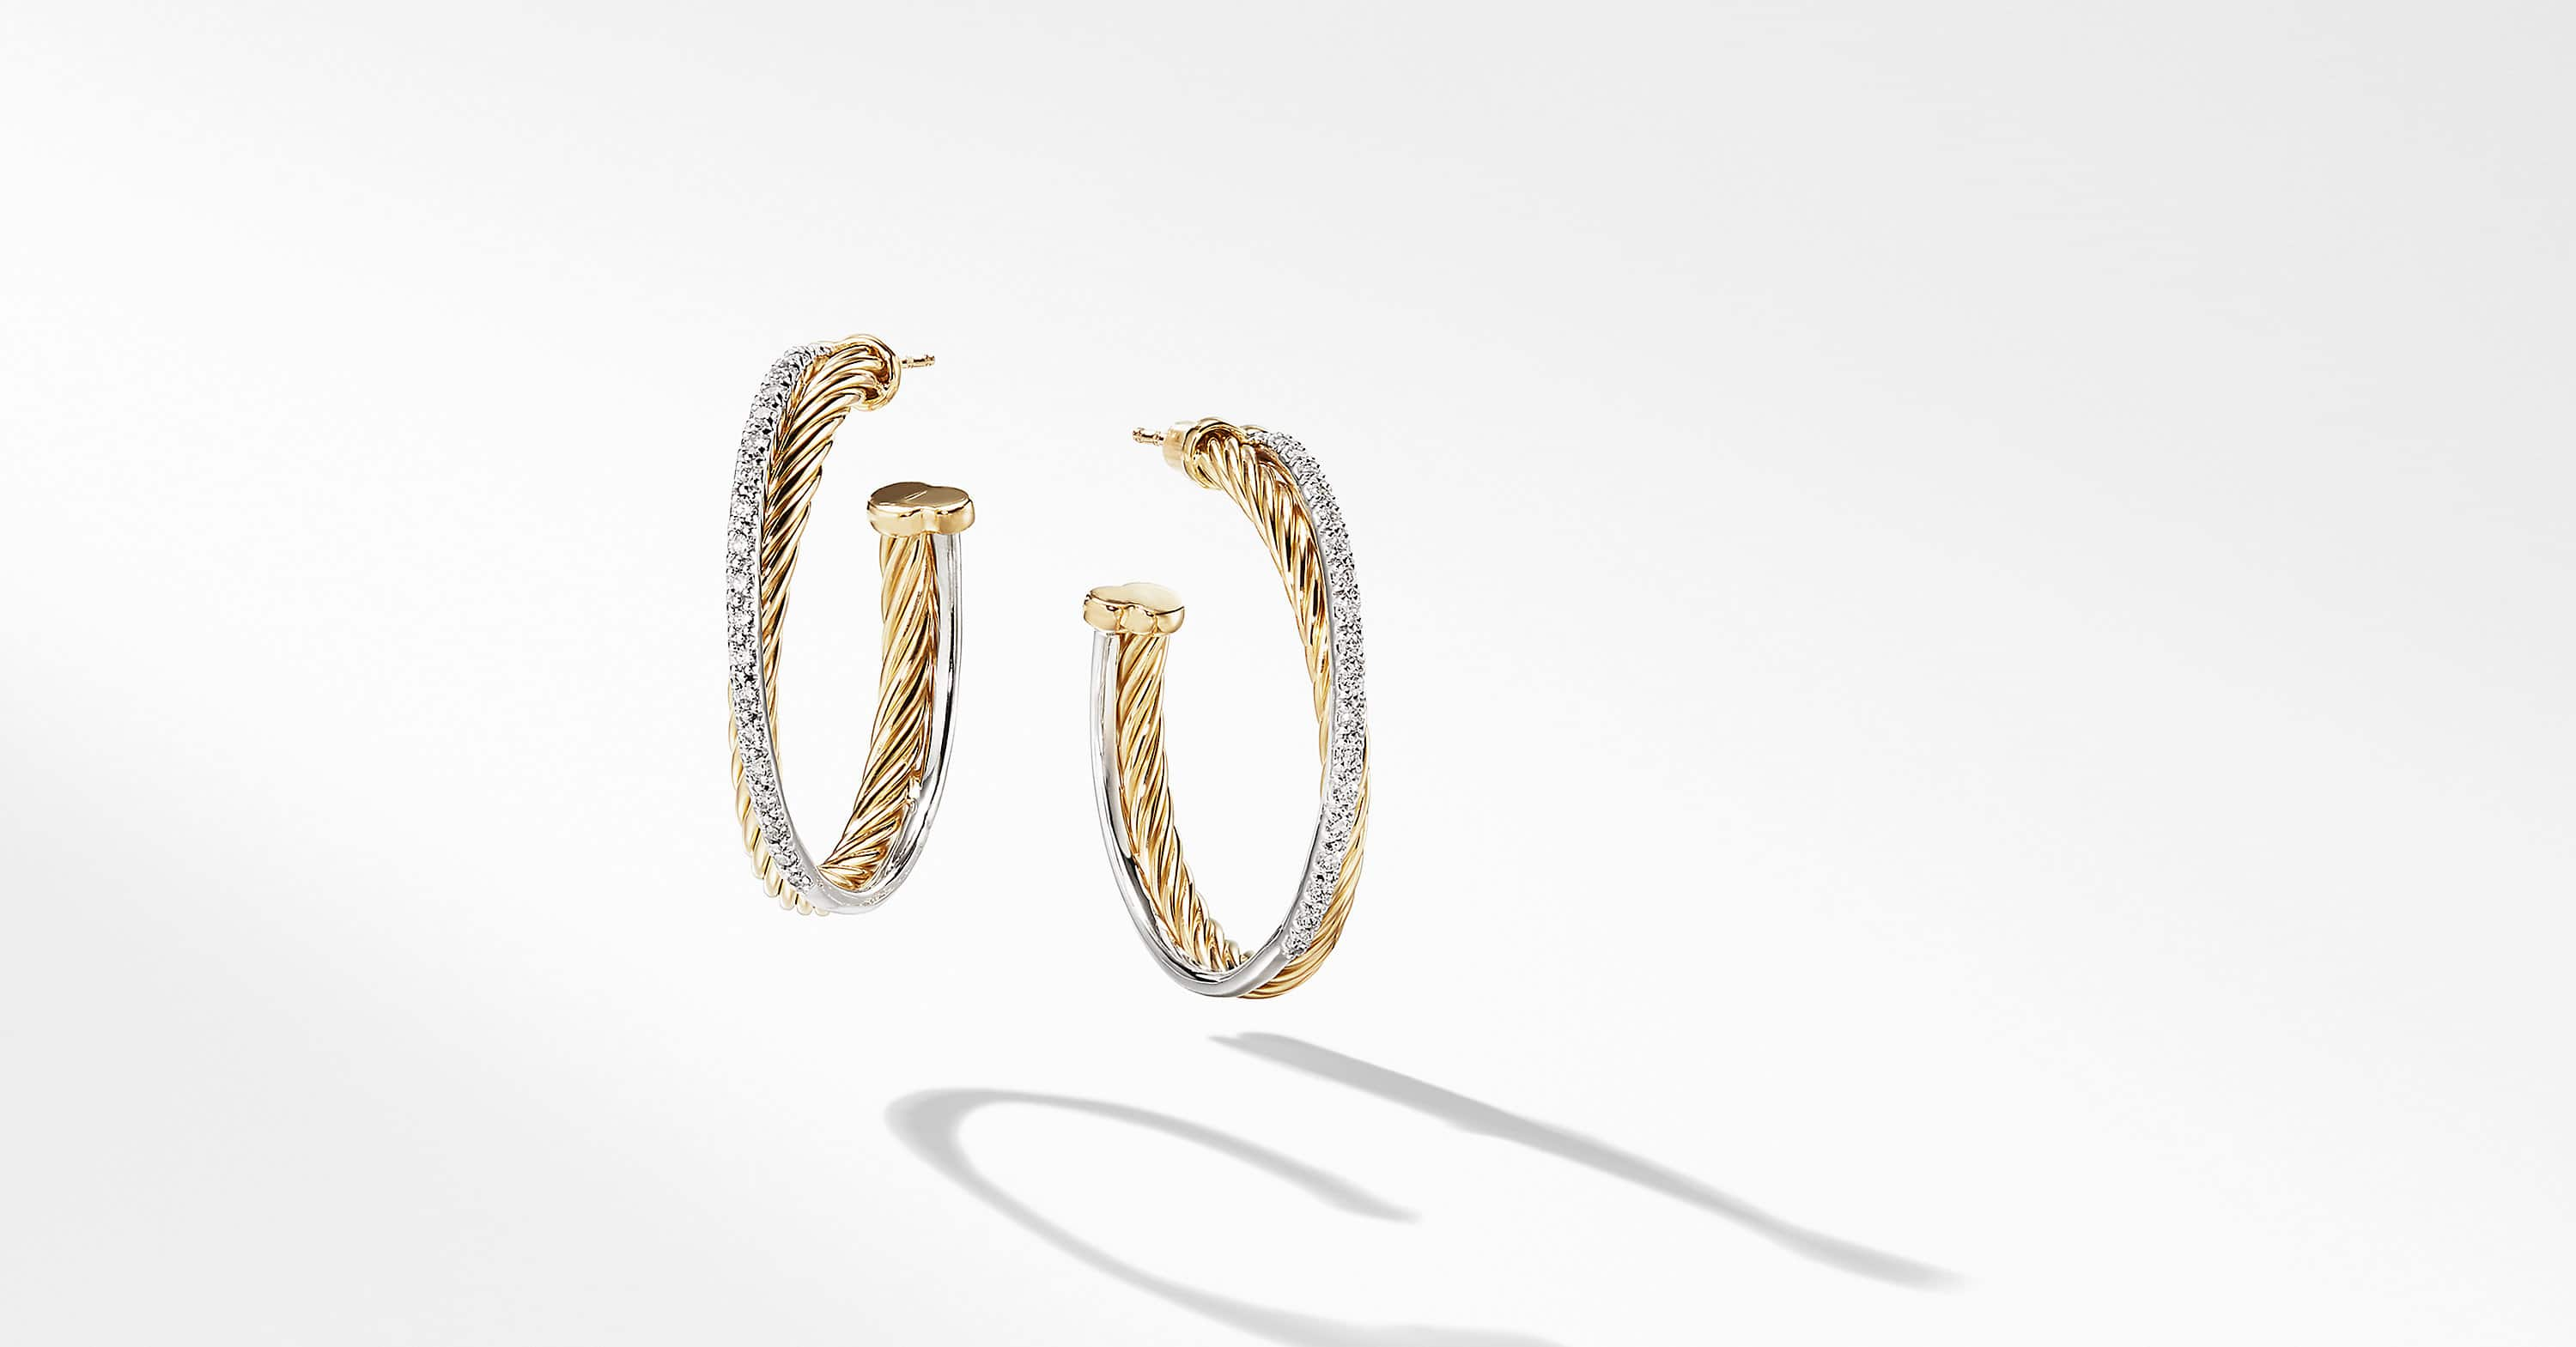 The Crossover Collection Medium Hoop Earrings in 18K Yellow Gold with Diamonds